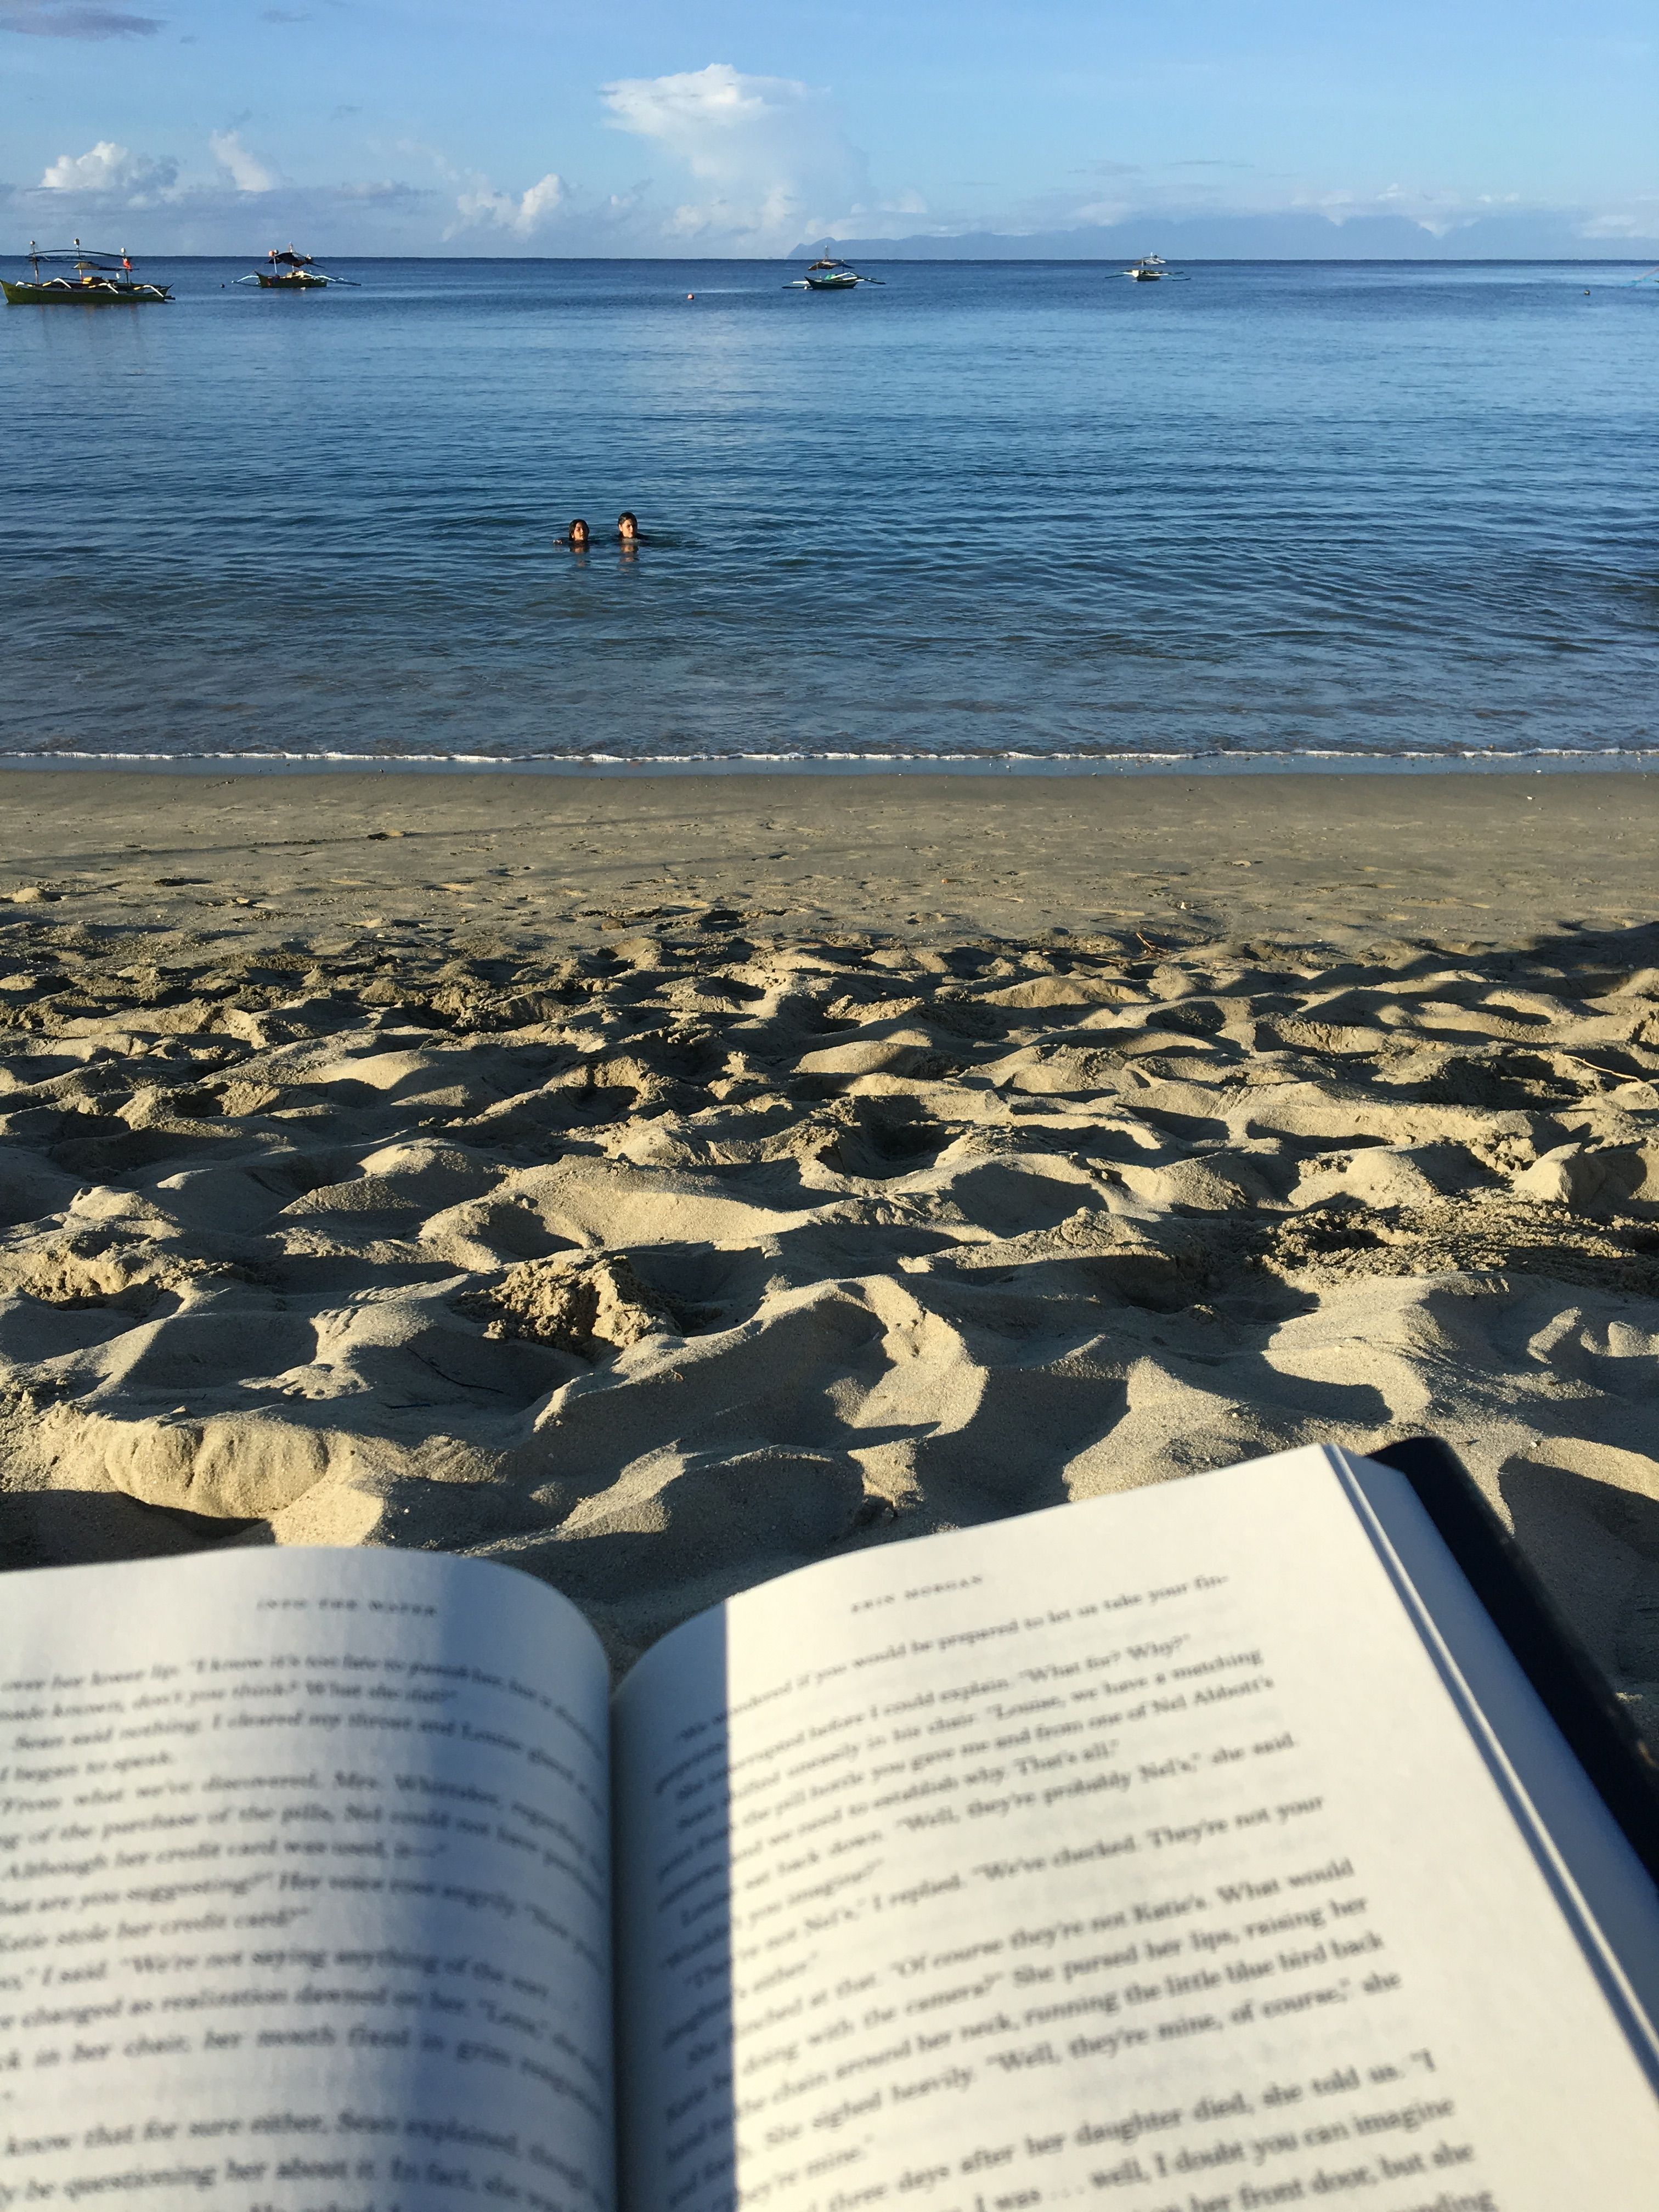 Book by the beach, beach and books, bookstagram   Sea photography